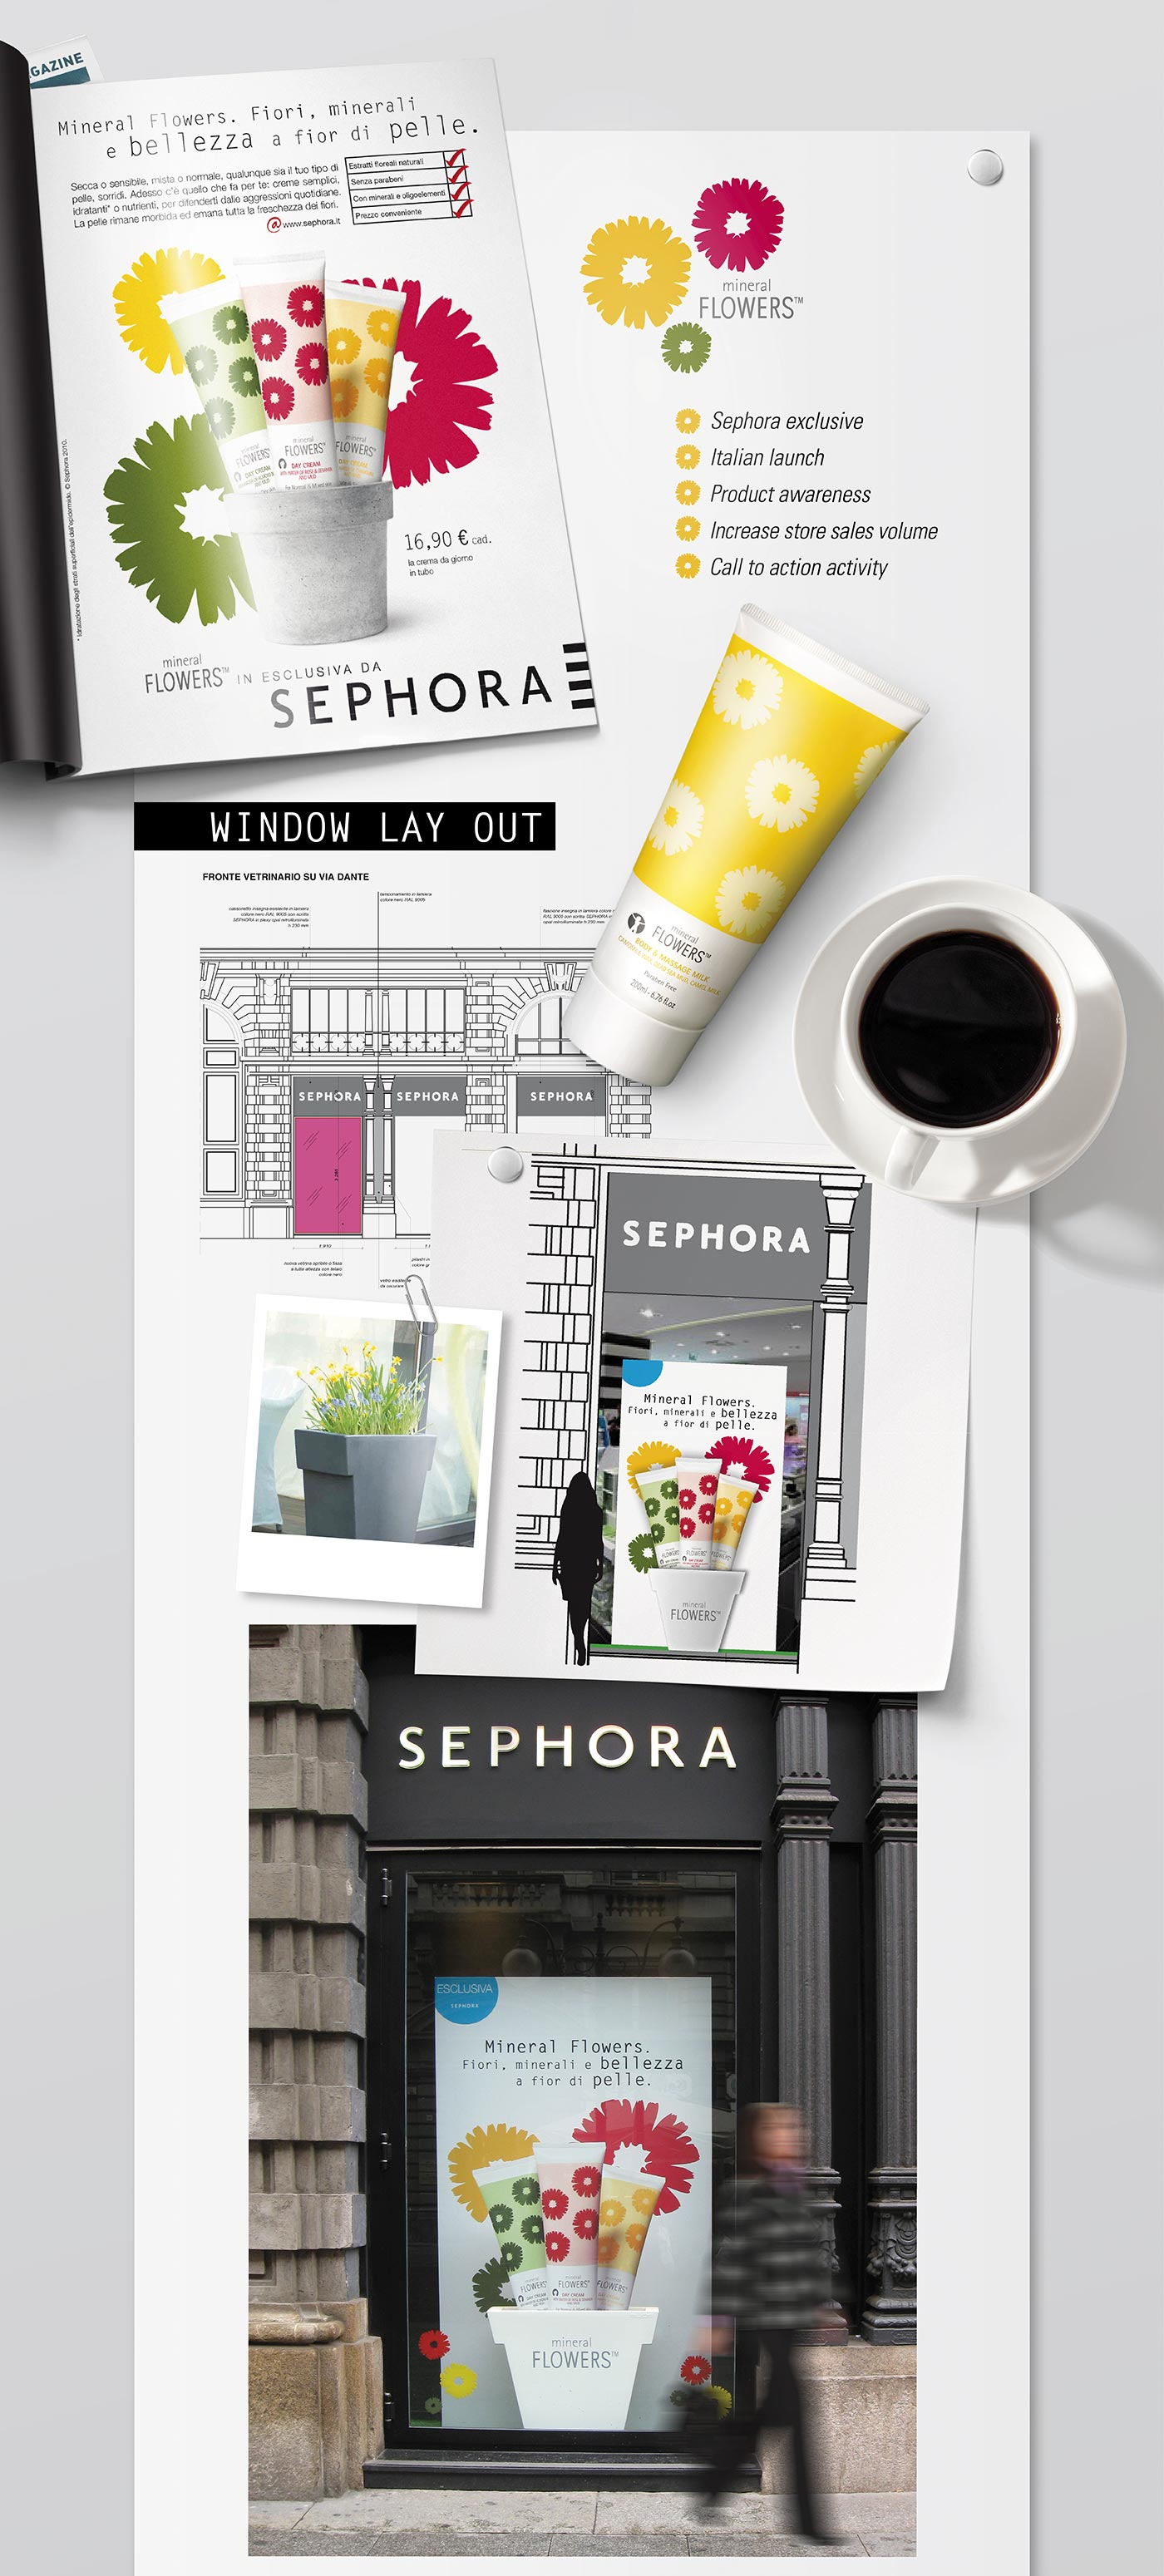 sephora_mineral_flowers_1